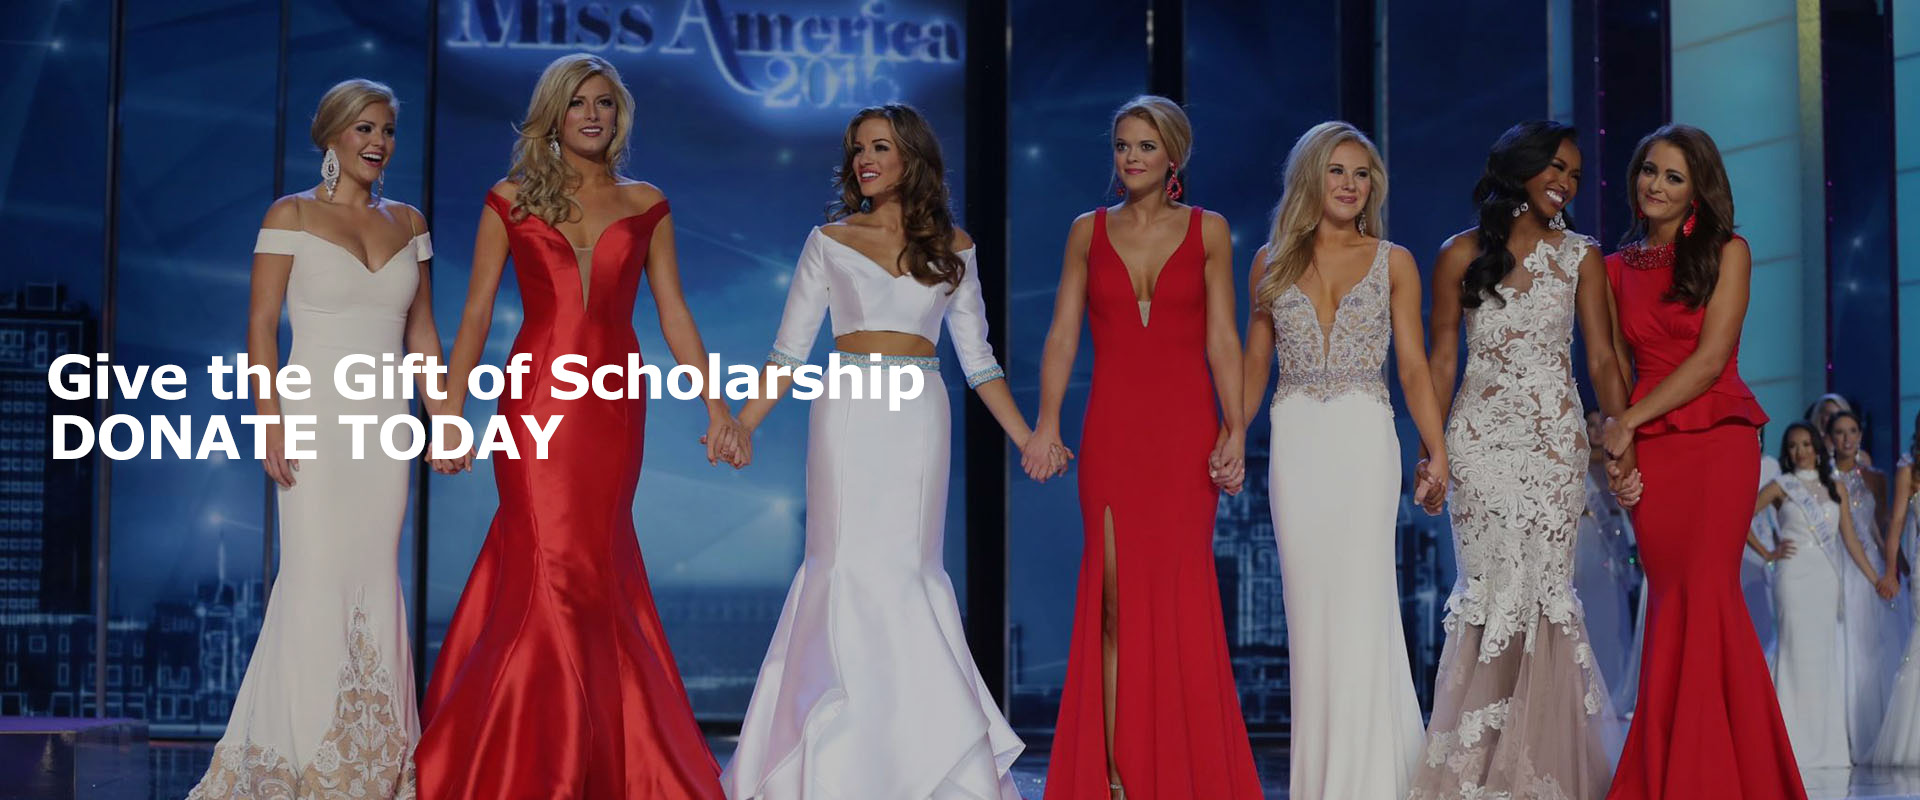 Donate to The Miss America Foundation